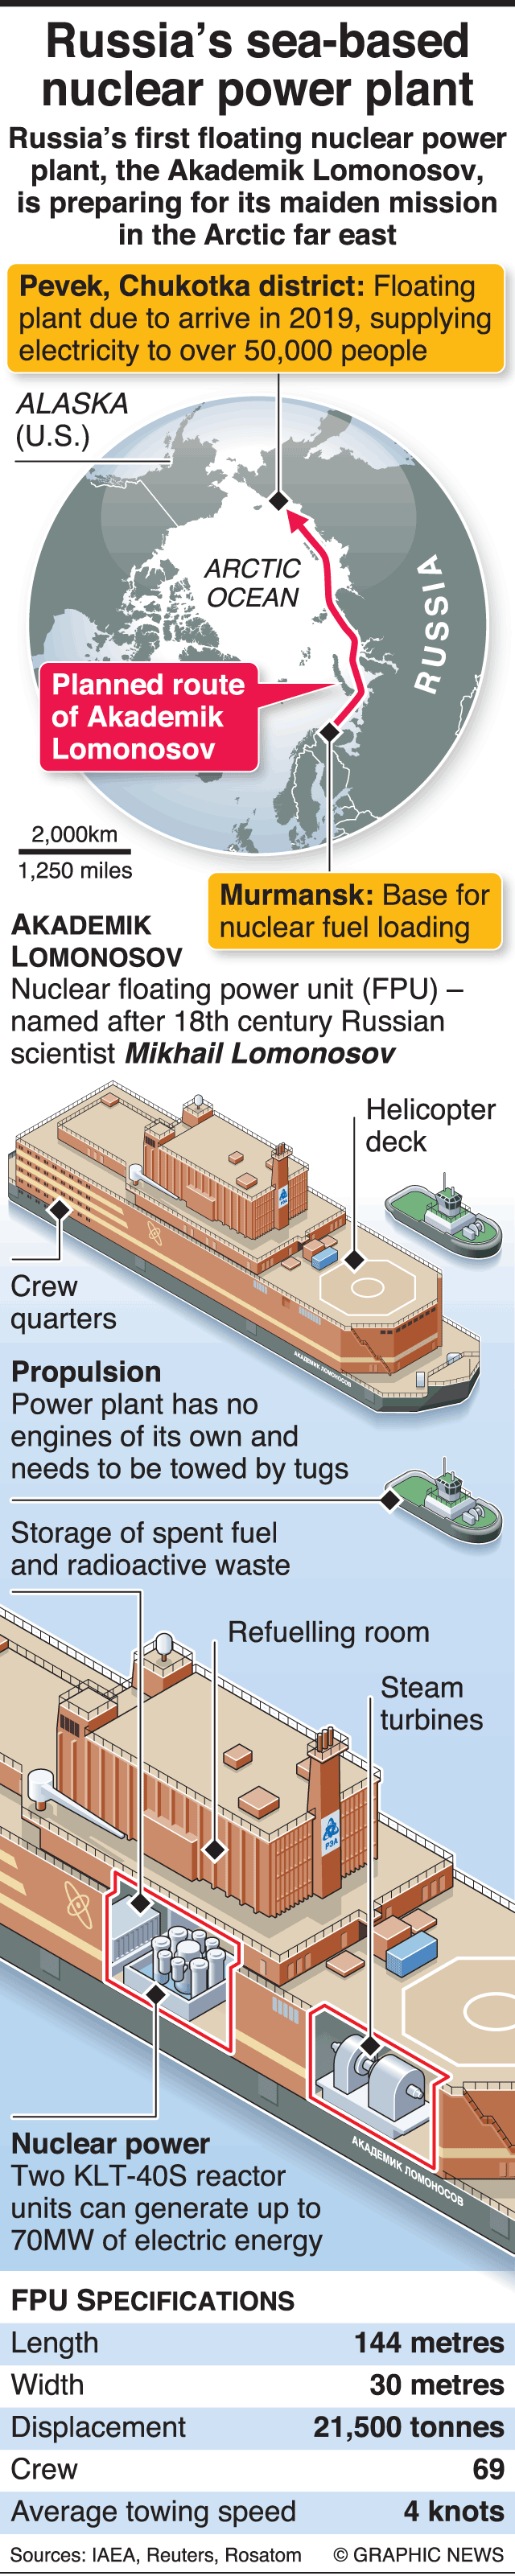 Russia's Floating Nuclear Power Plant Starts Shift In Global Energy Industry